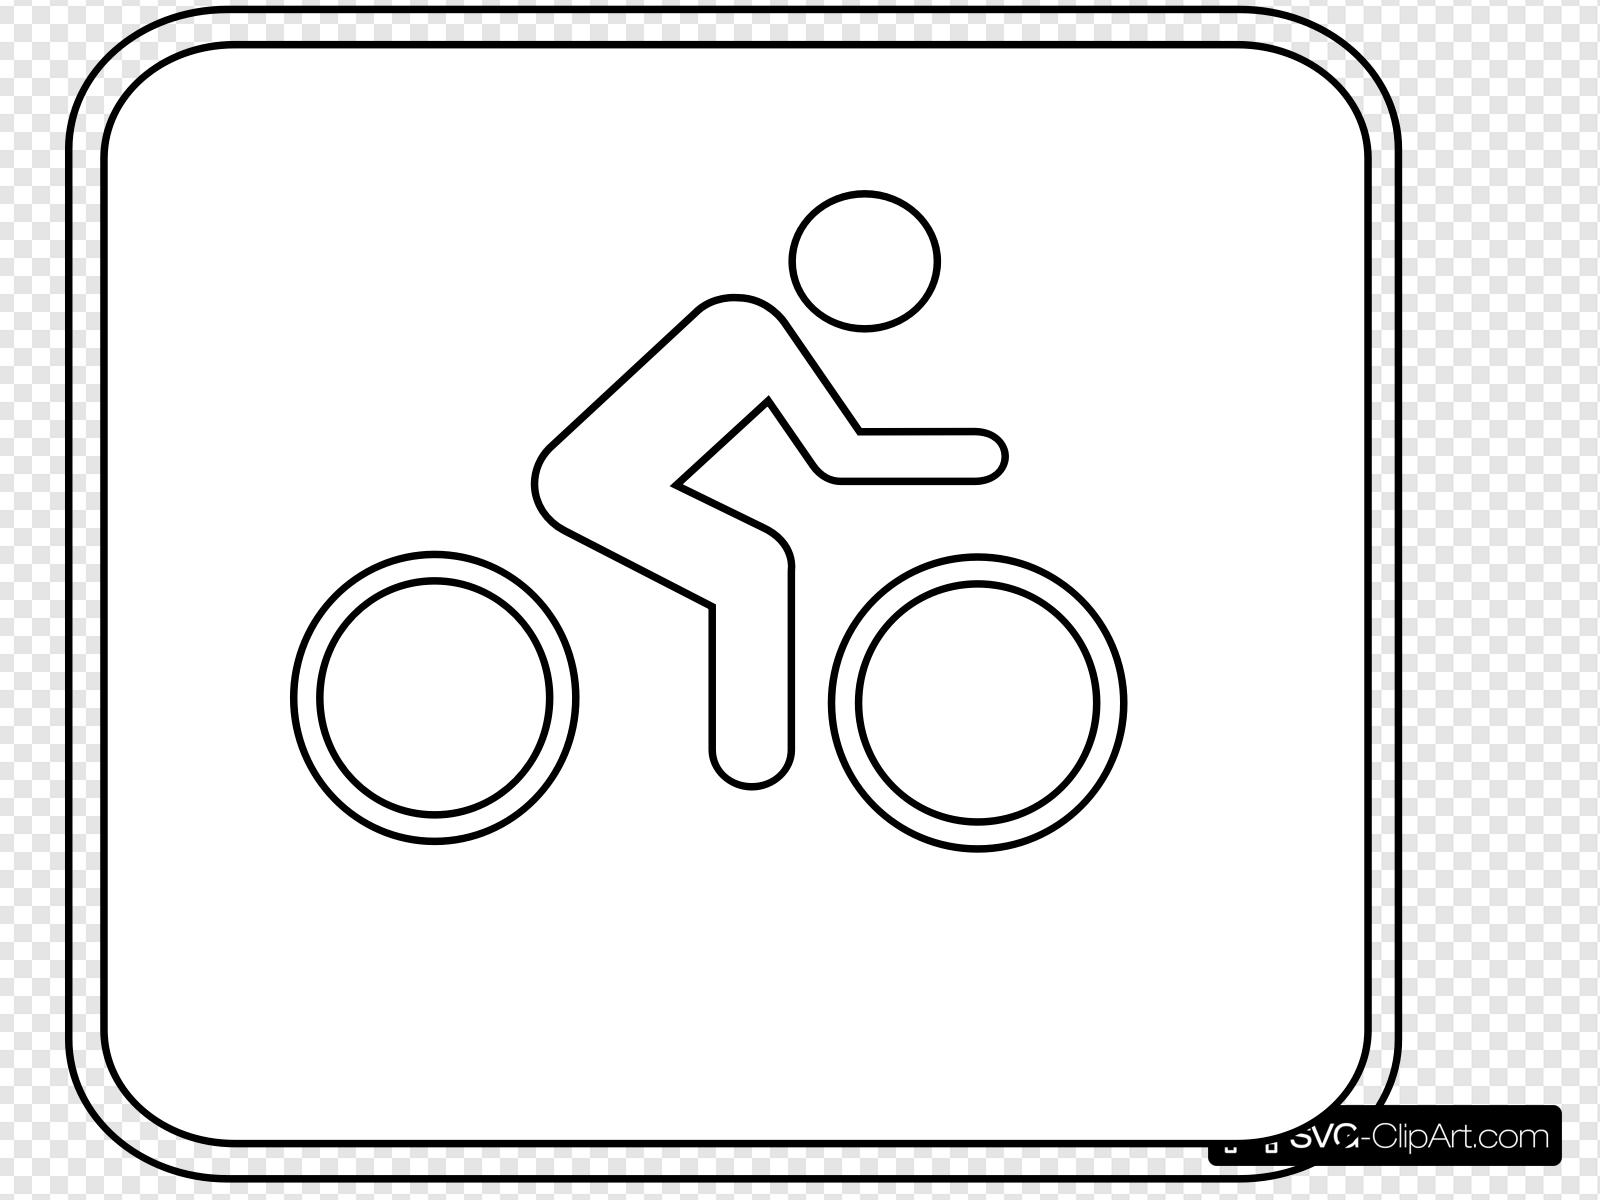 Biking Sign Outline Clip art, Icon and SVG.